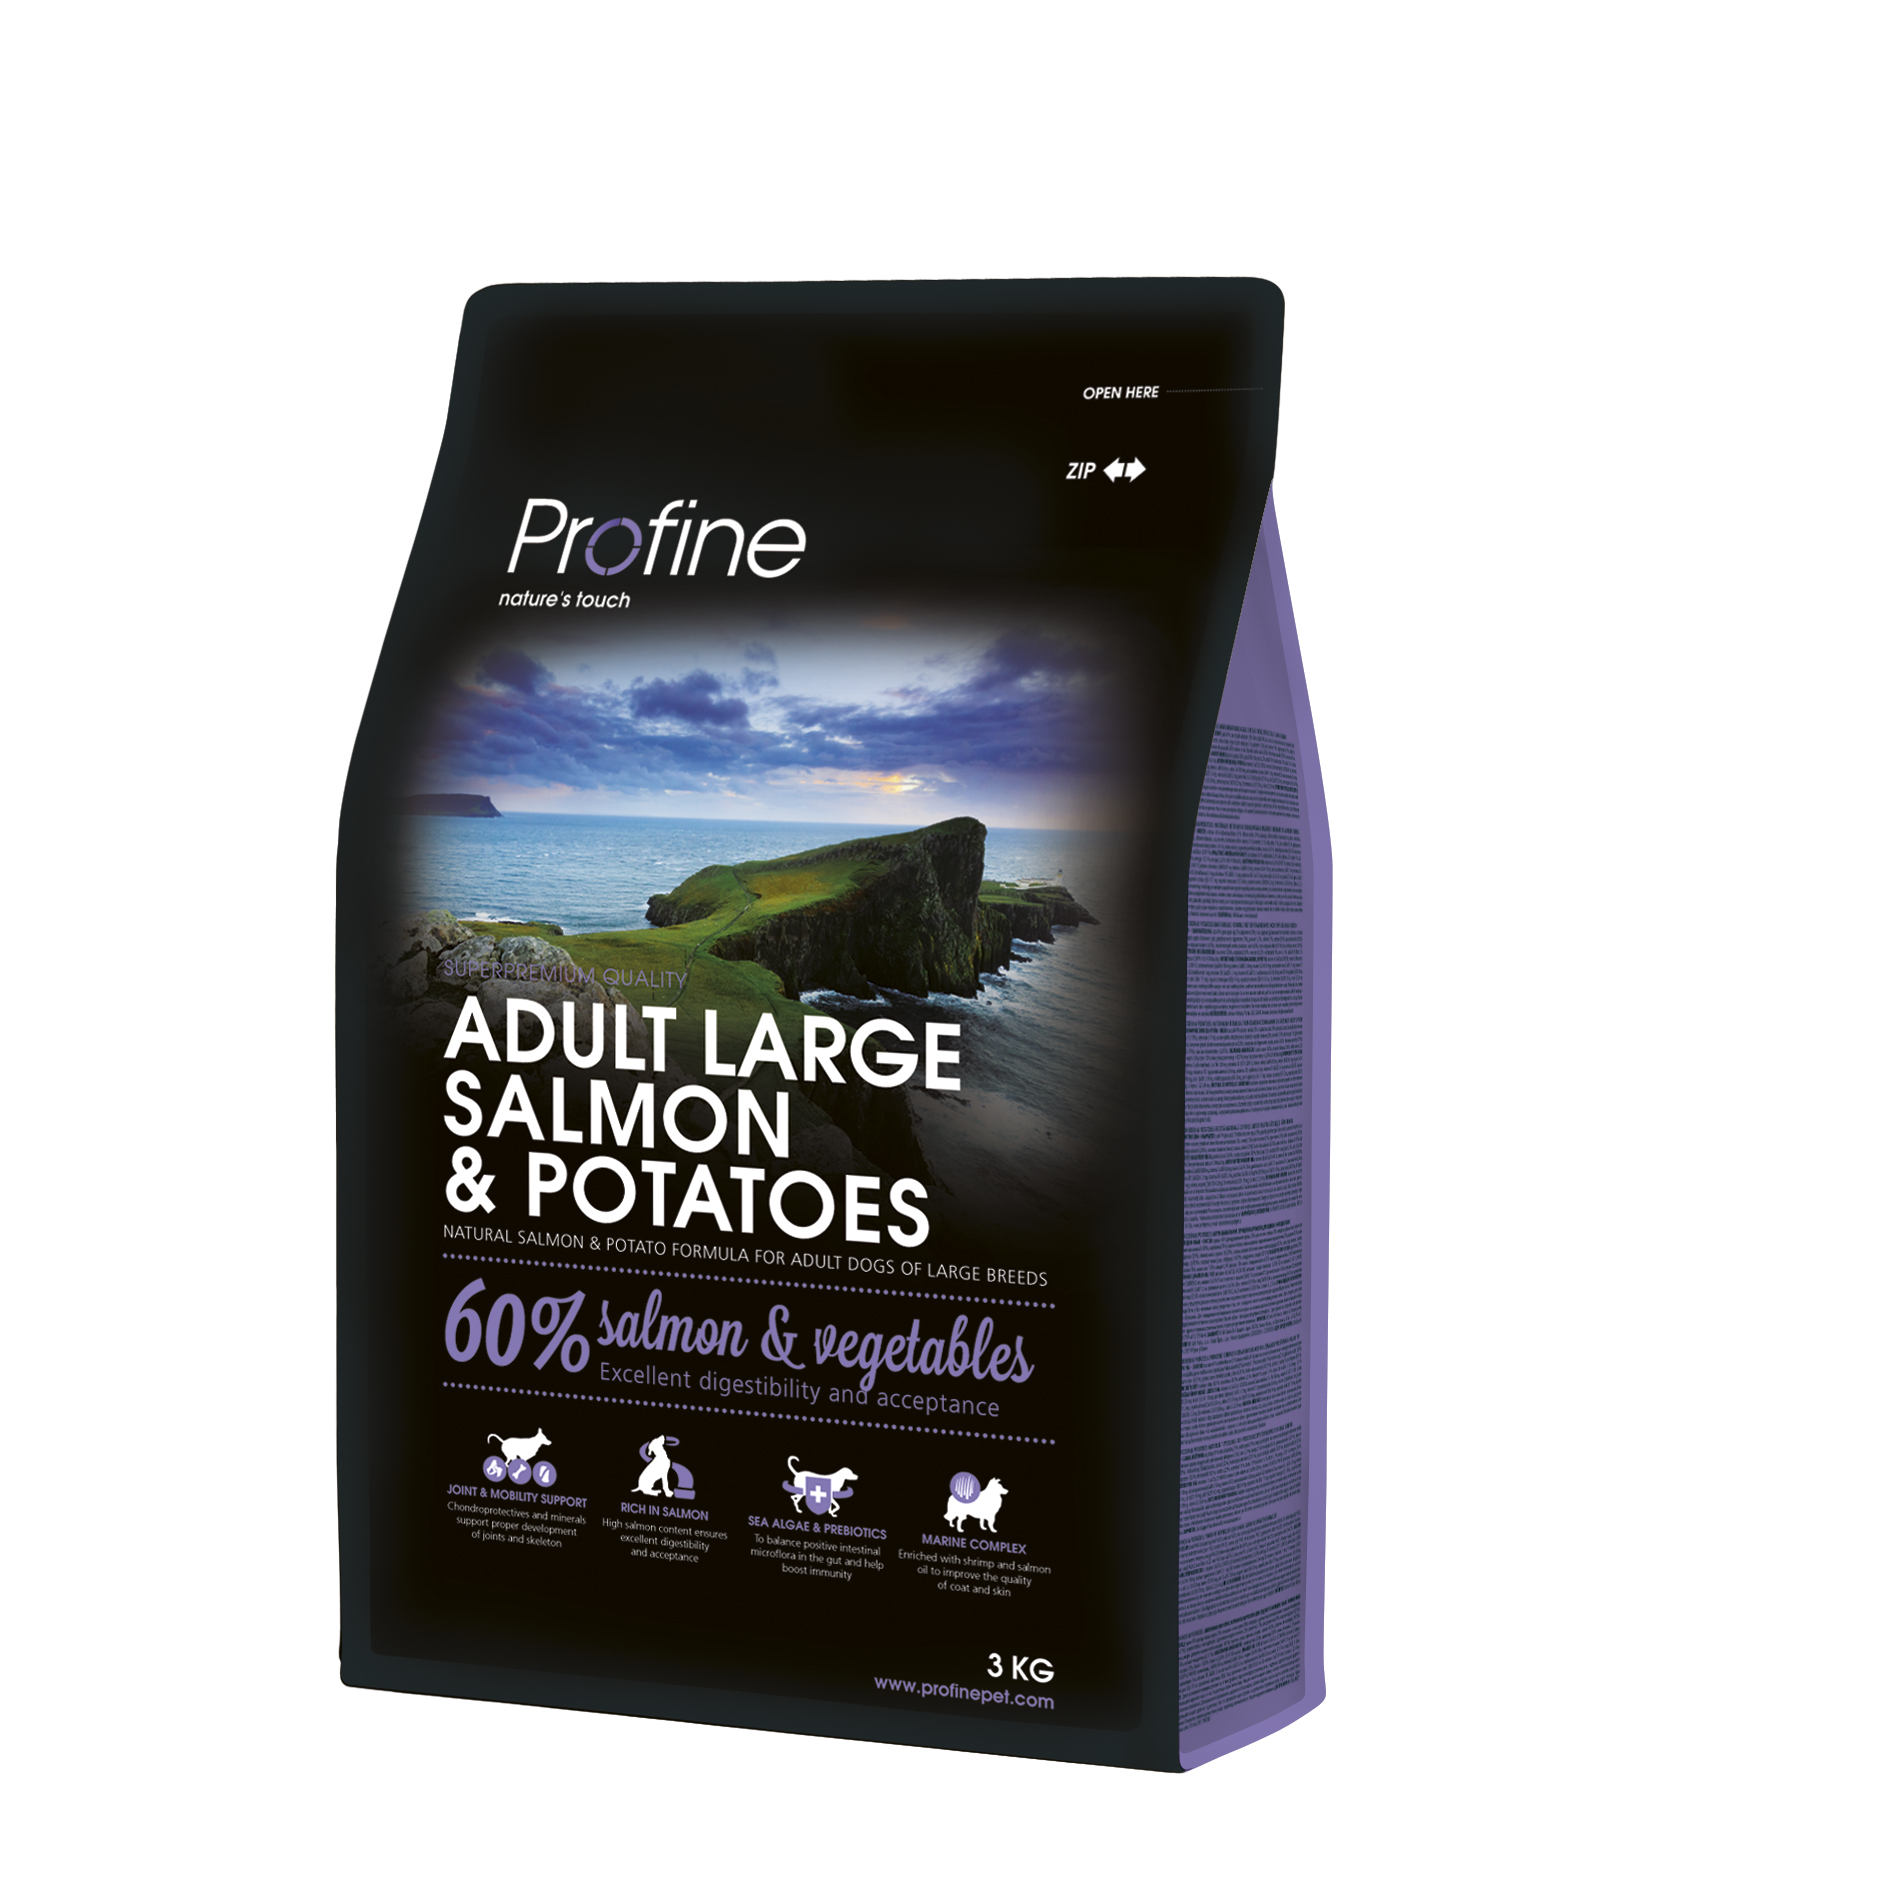 Profine Adult Large Breed Salmon & Potatoes 3kg